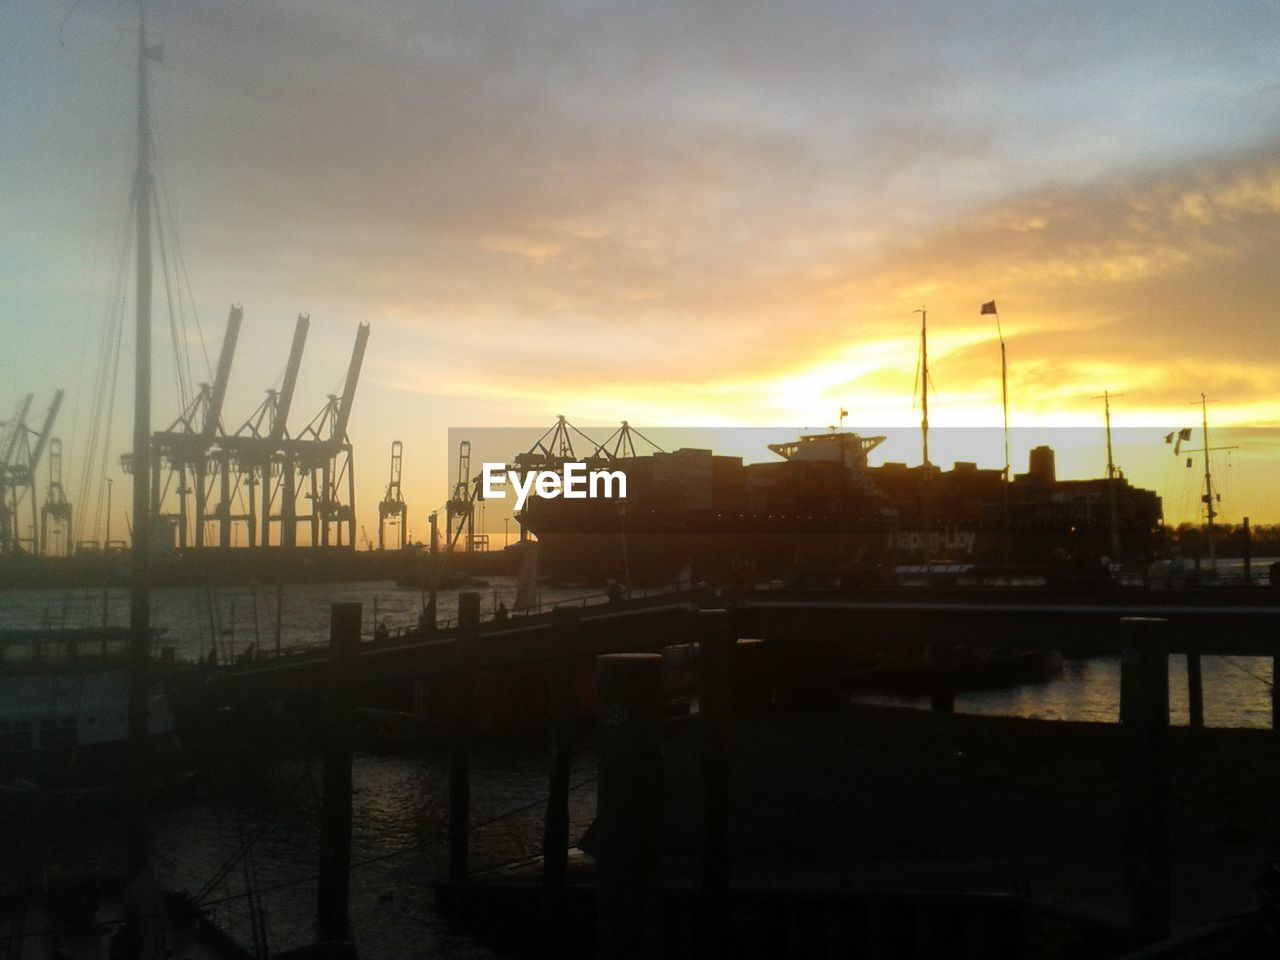 sunset, nautical vessel, harbor, commercial dock, water, sky, crane - construction machinery, transportation, pier, mode of transport, freight transportation, built structure, no people, shipping, outdoors, moored, sea, crane, industry, jetty, waterfront, cloud - sky, silhouette, shipyard, building exterior, architecture, nature, mast, city, day